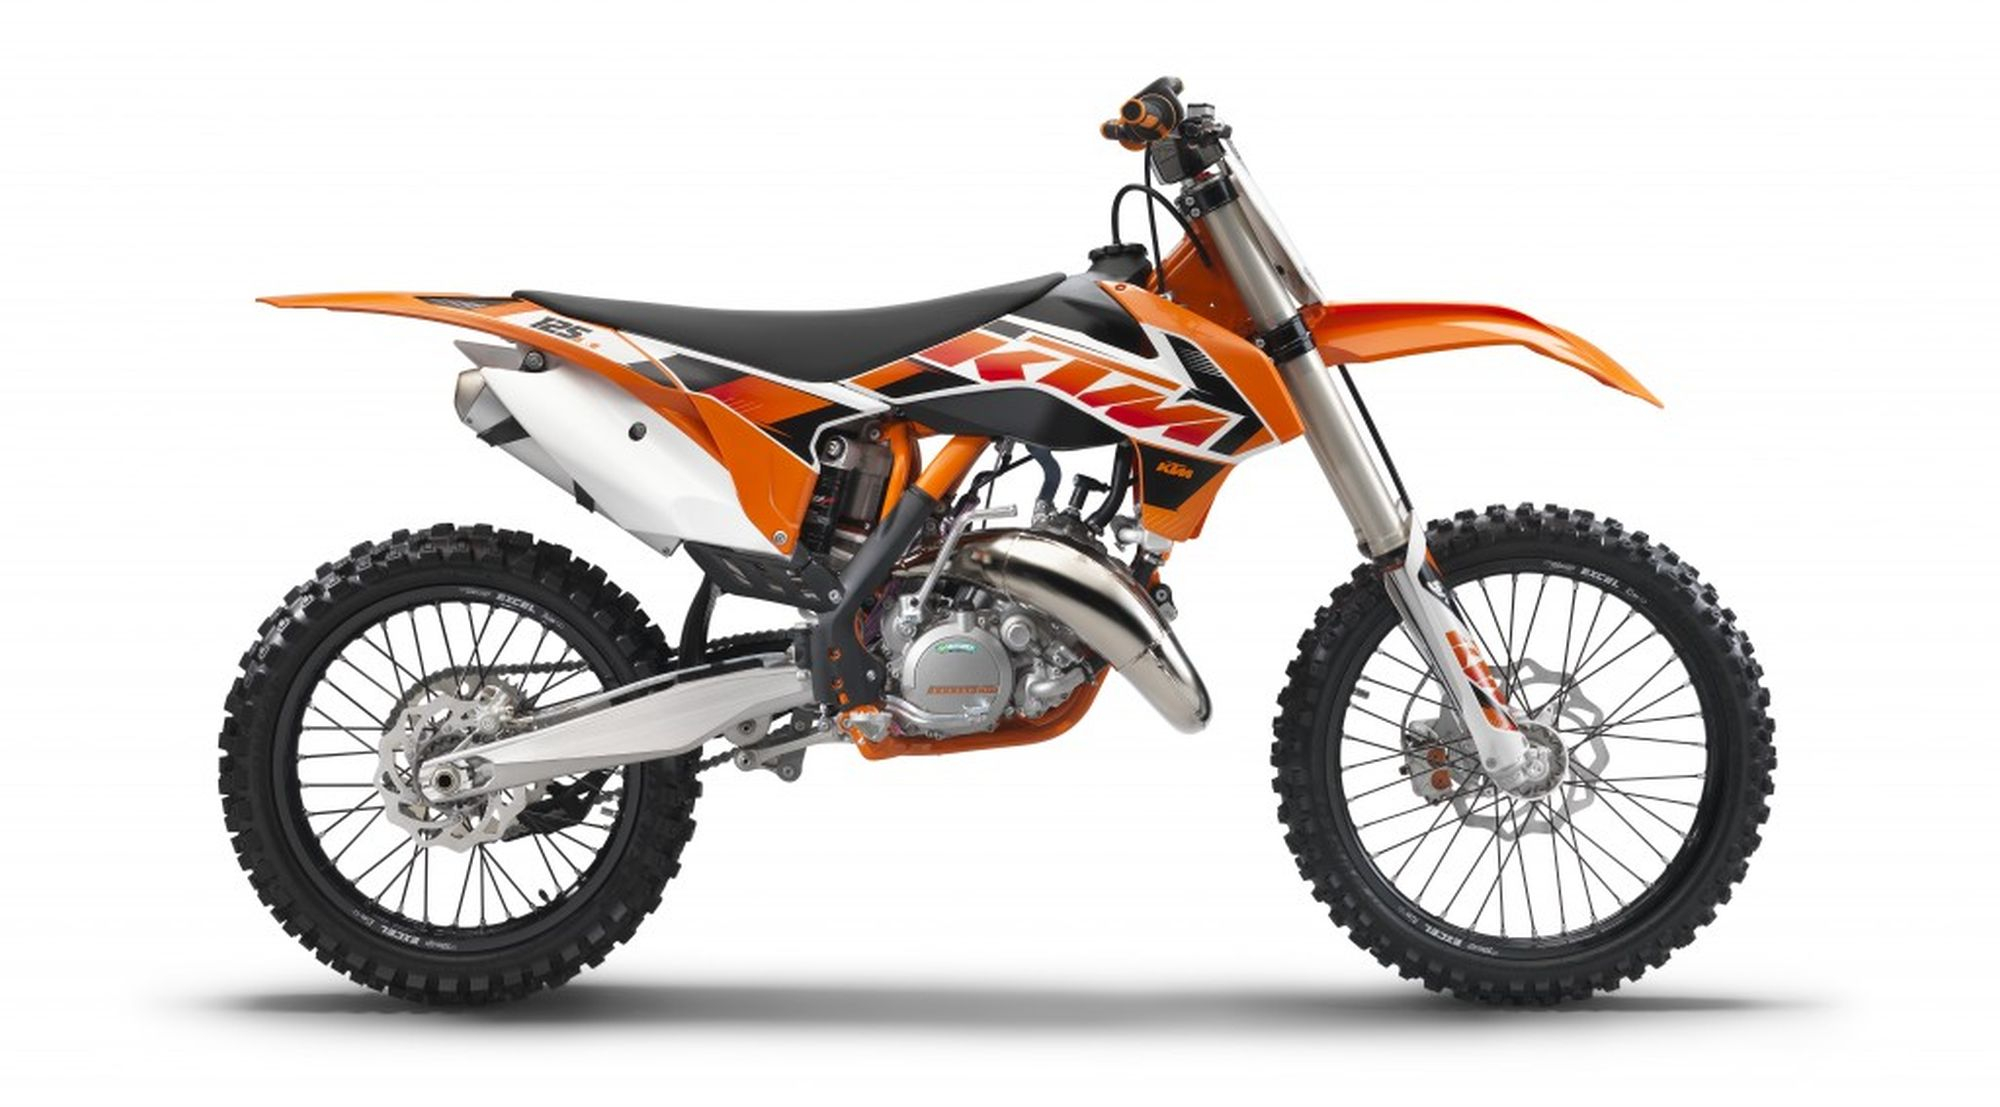 ktm 125 sx baujahr 2015 bilder und technische daten pictures. Black Bedroom Furniture Sets. Home Design Ideas